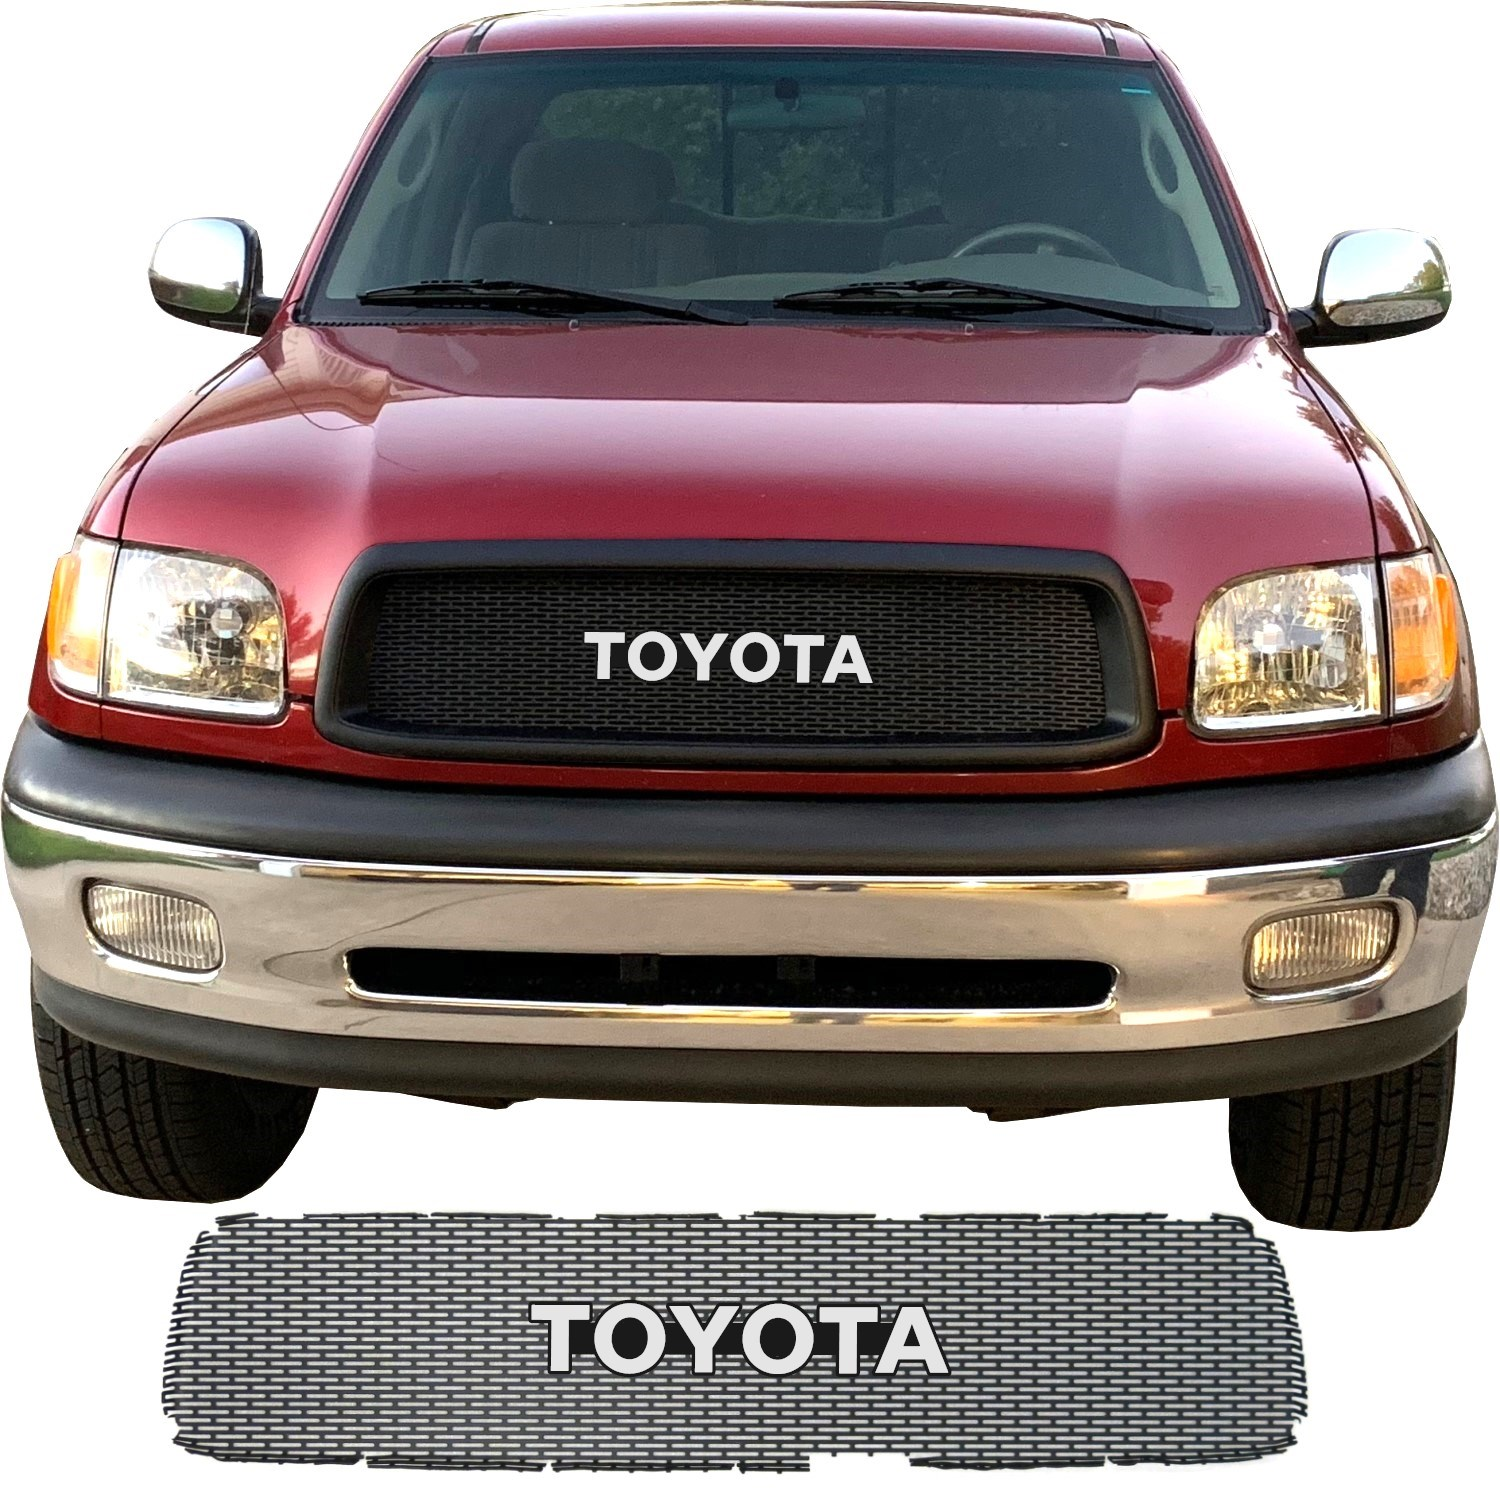 2000-02 Toyota Tundra Grill Mesh with Toyota Emblem